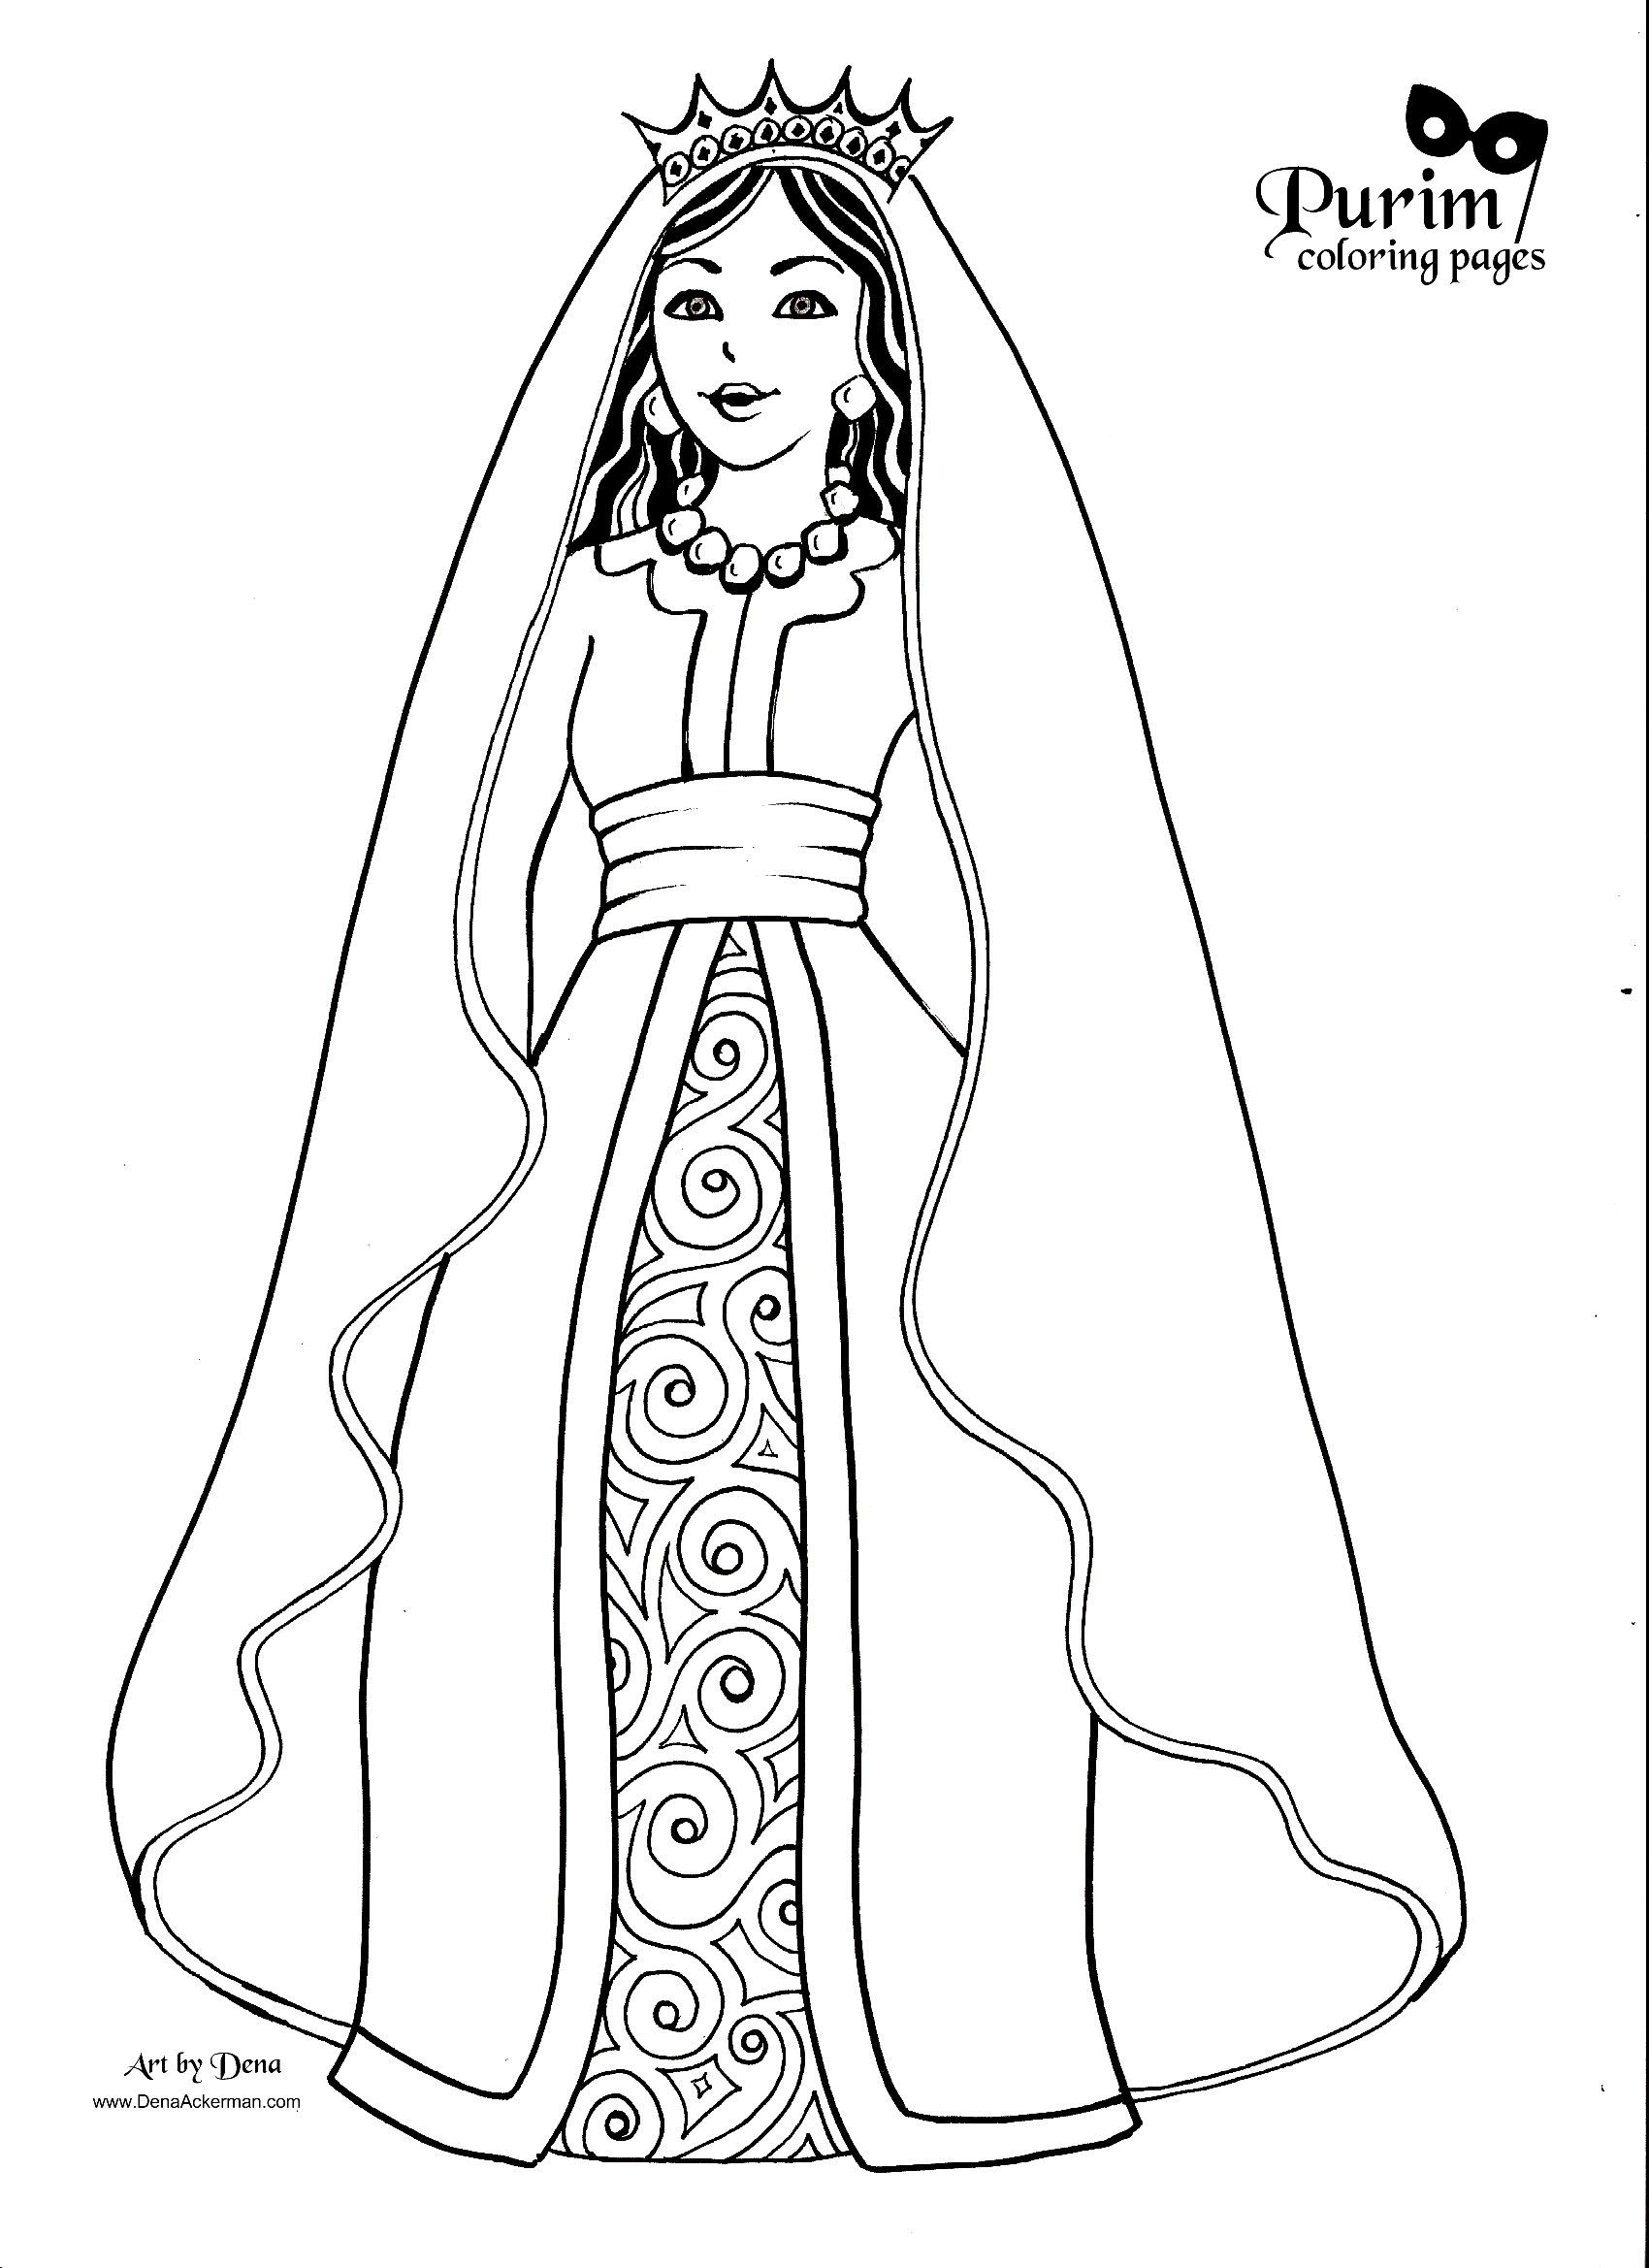 Purim Coloring Pages Esther Bible Purim Bible Coloring